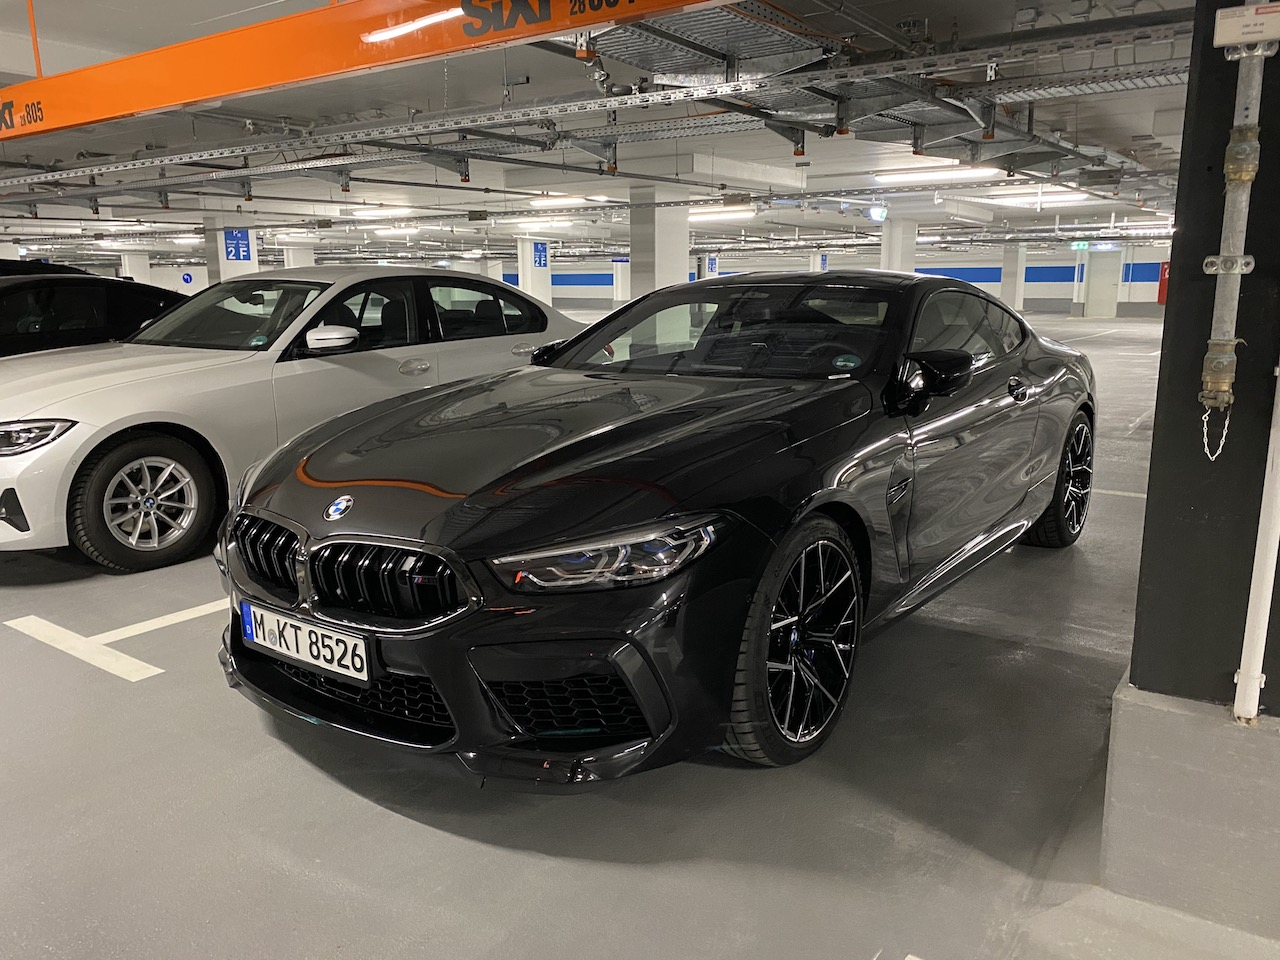 SIXT_BMW M8 Coupe.JPG